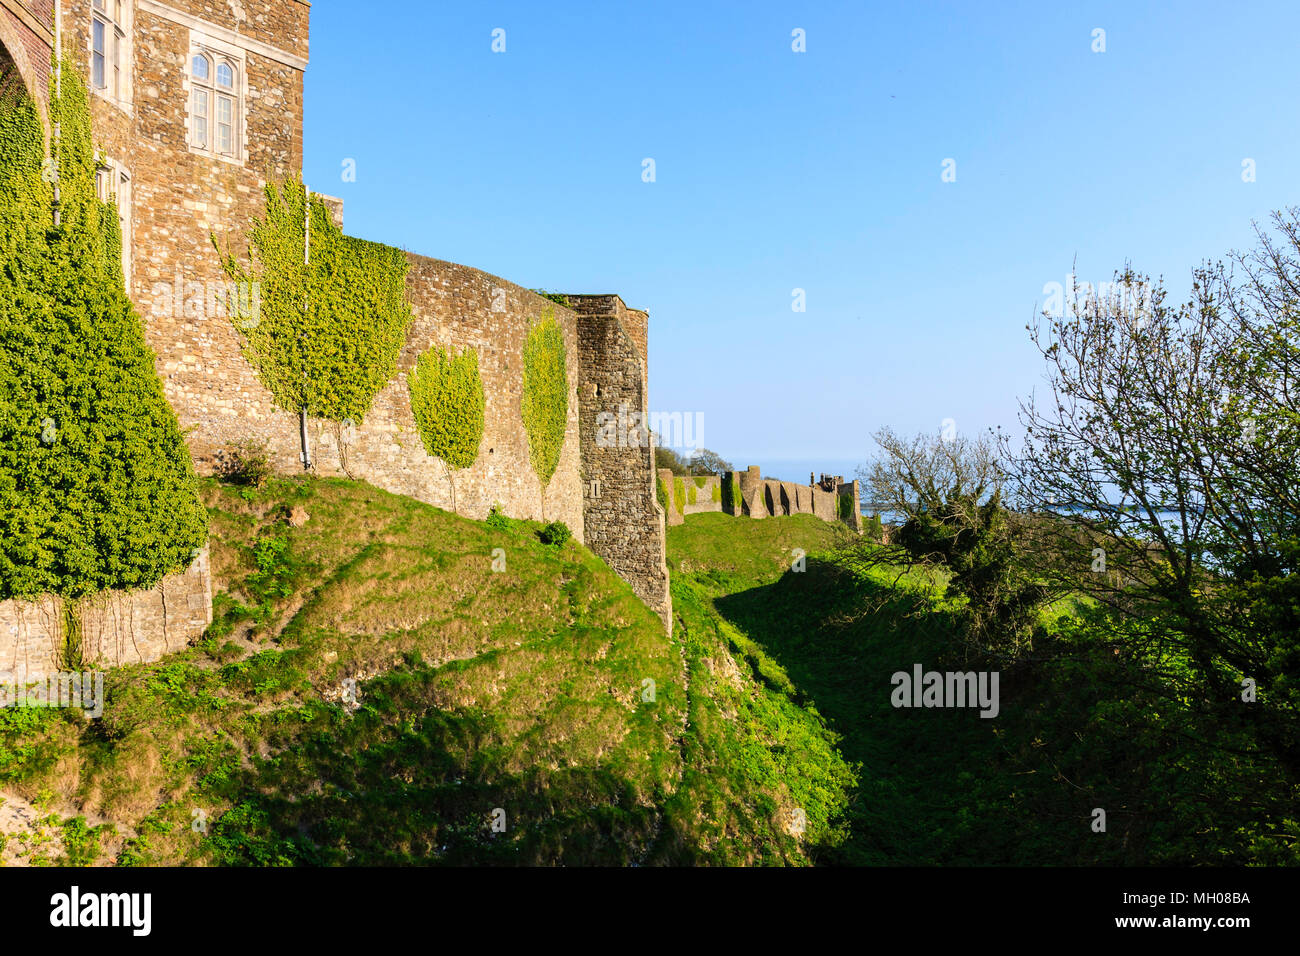 England, Dover castle. Outer Western curtain wall from the Constable's gate showing Queen Mary's tower and others in the distance. Bright sunshine. Stock Photo